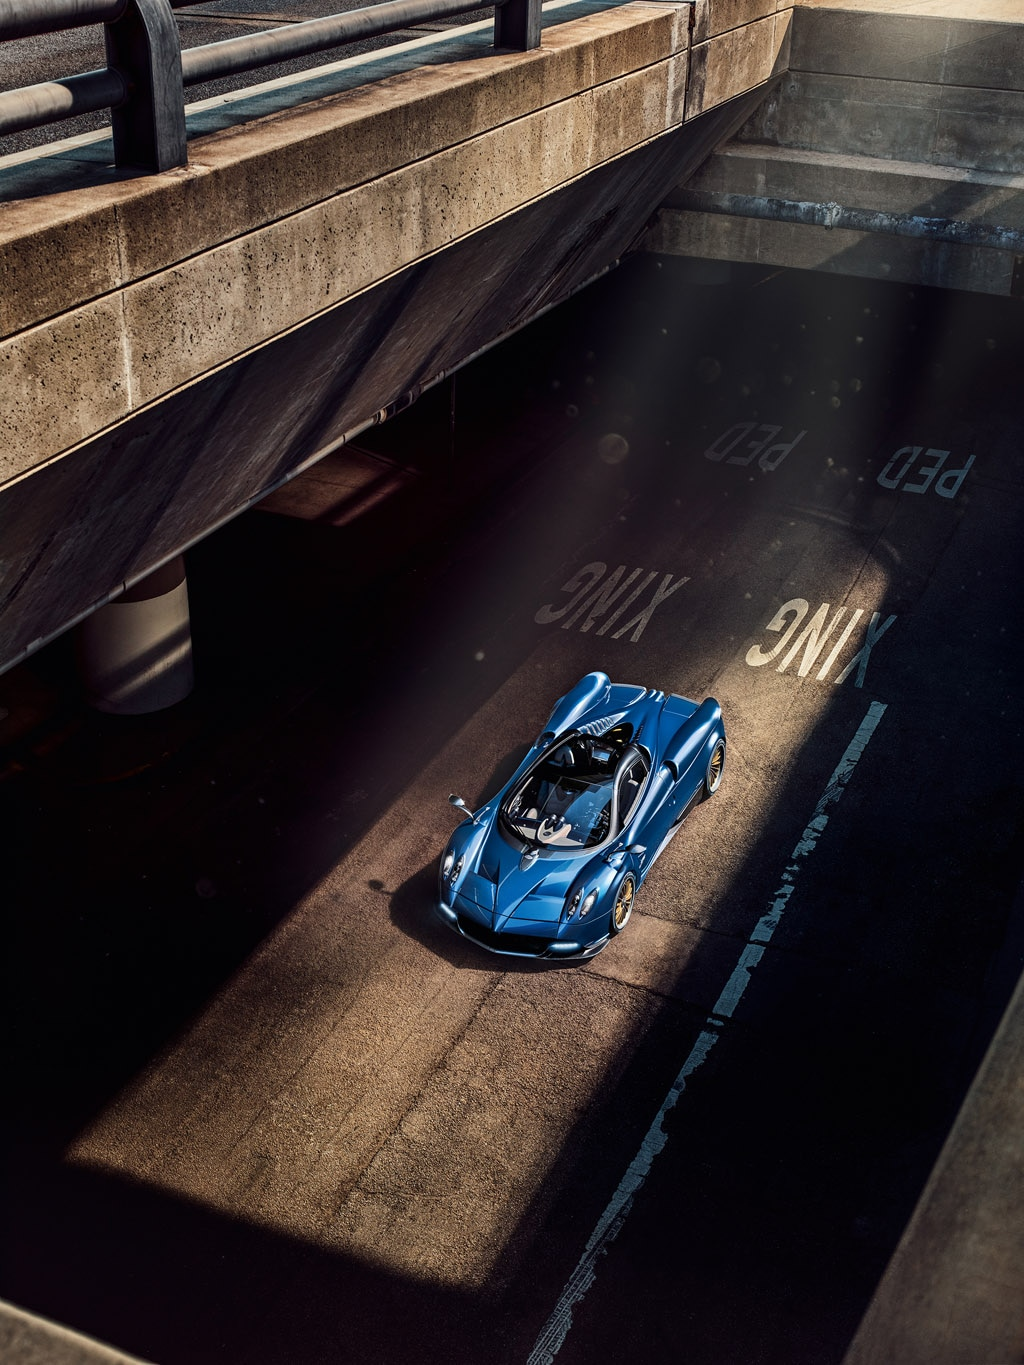 DS pagani huayra roadster : Pagani Huayra Roadster Arrives with 764 Horsepower | Automobile ...